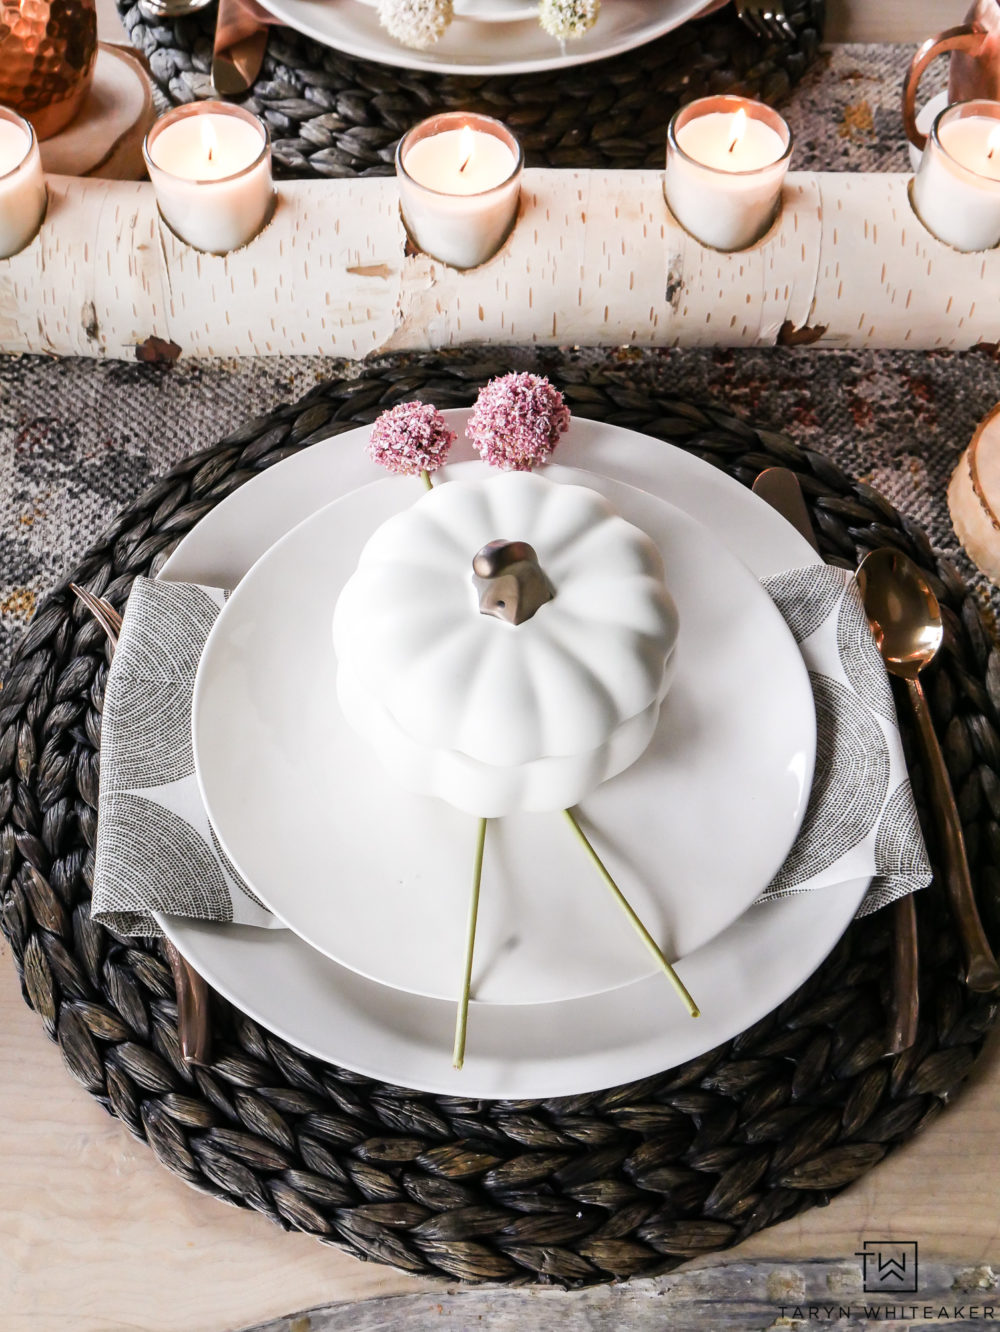 Create and elegant and unique fall tablescape using earth tones and natural textures. Love these blush pink fall table decorations. Such a pretty table for early fall.